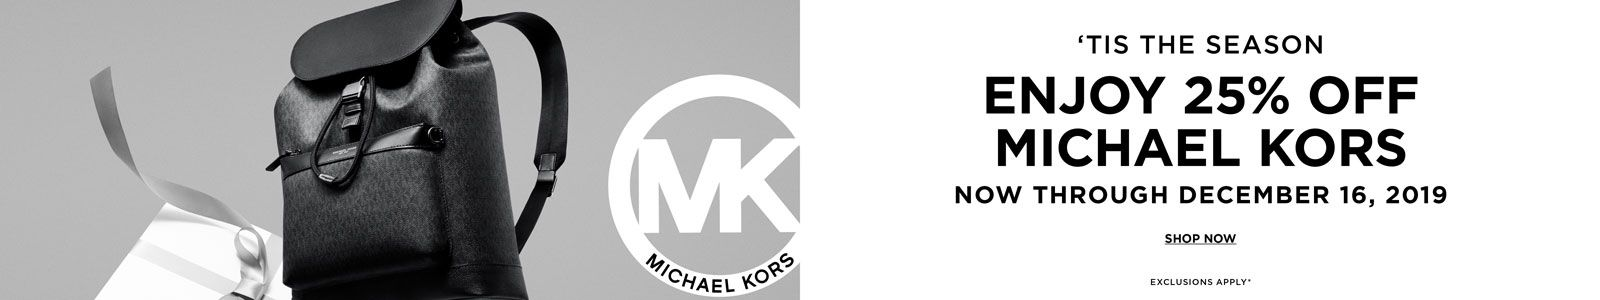 "Michael Kors, ""Tis The Season, Enjoy 25 percent Off Michael Kors, Now Through December 16, 2019, Shop Now, Exclusions Apply"